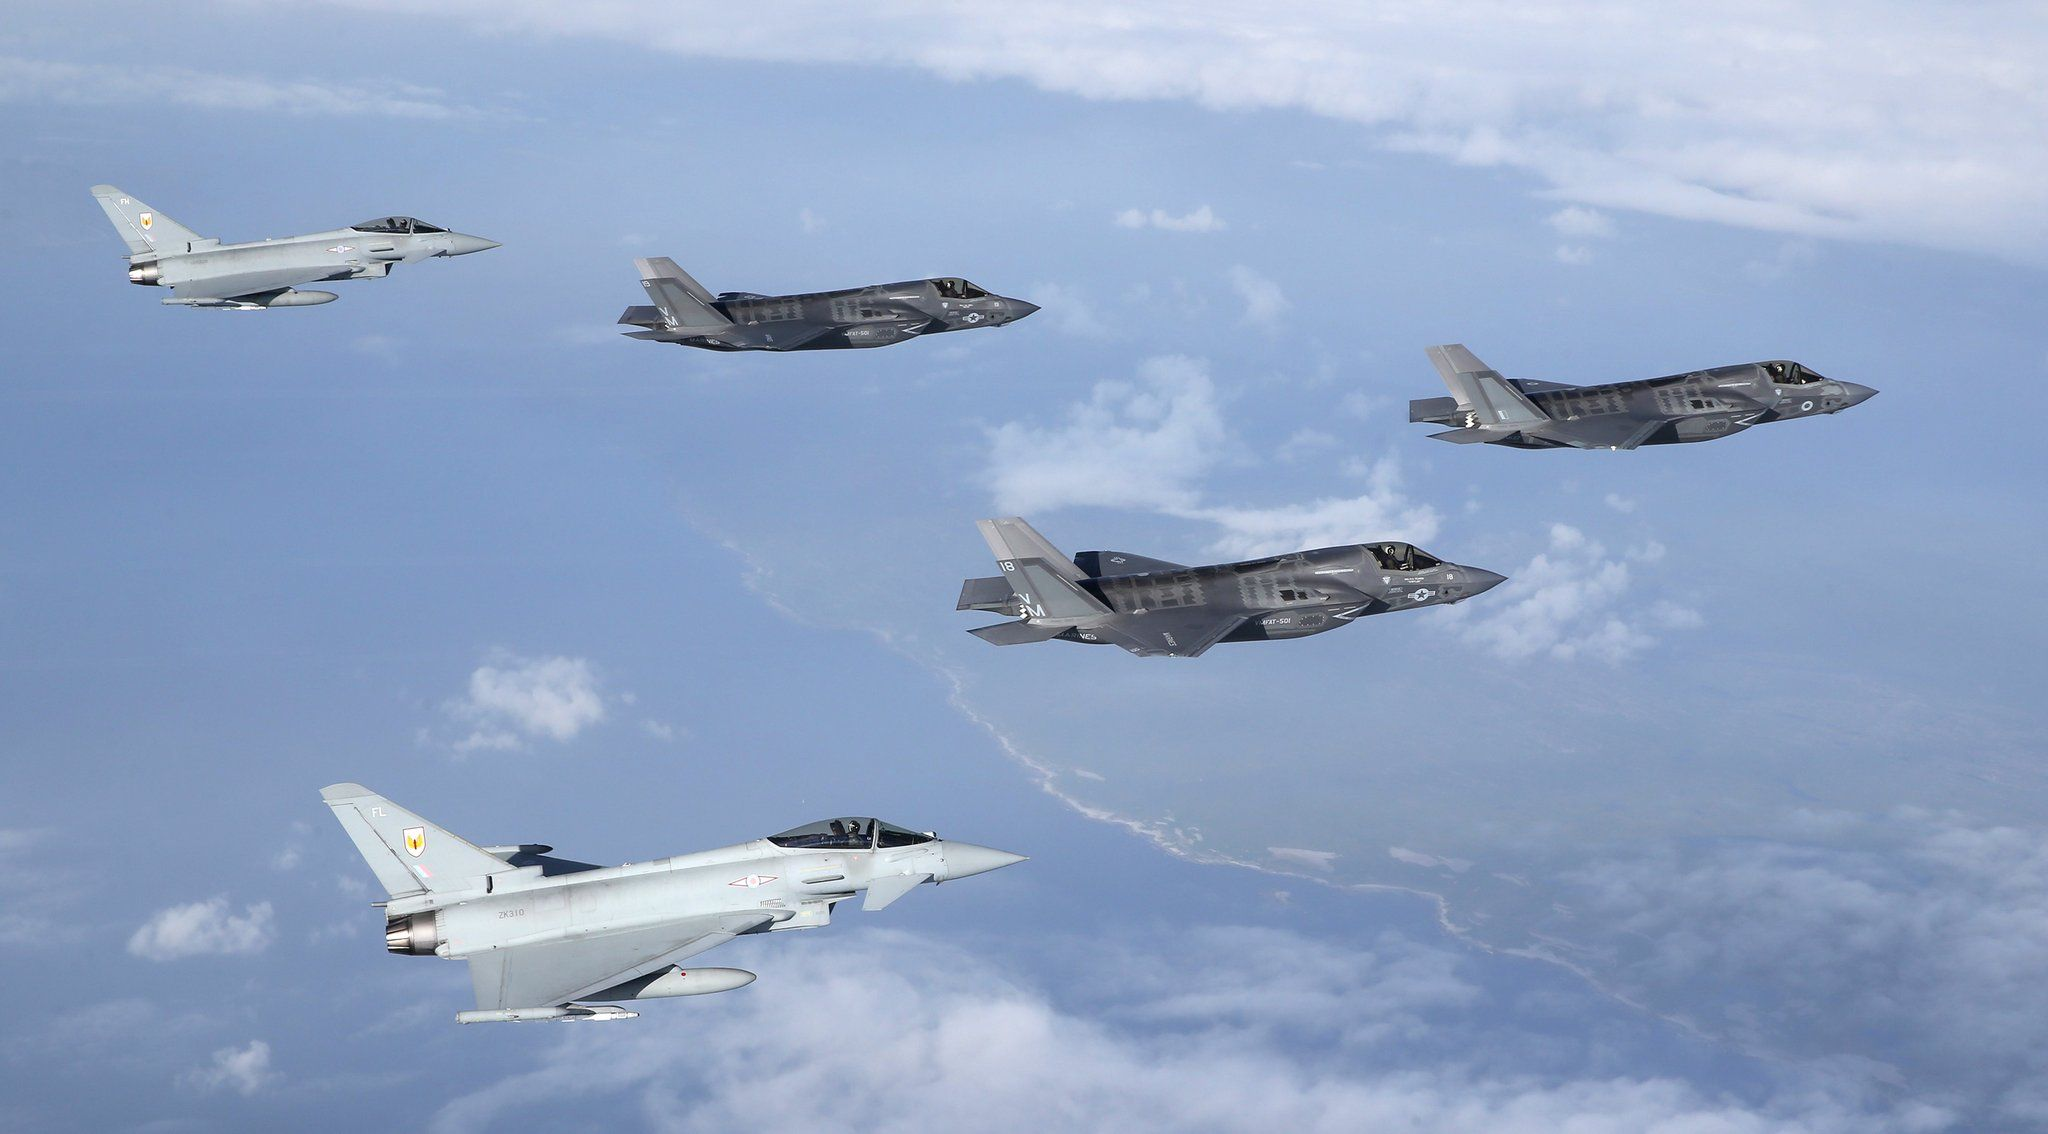 F35s arrive in the UK for the first time escorted by